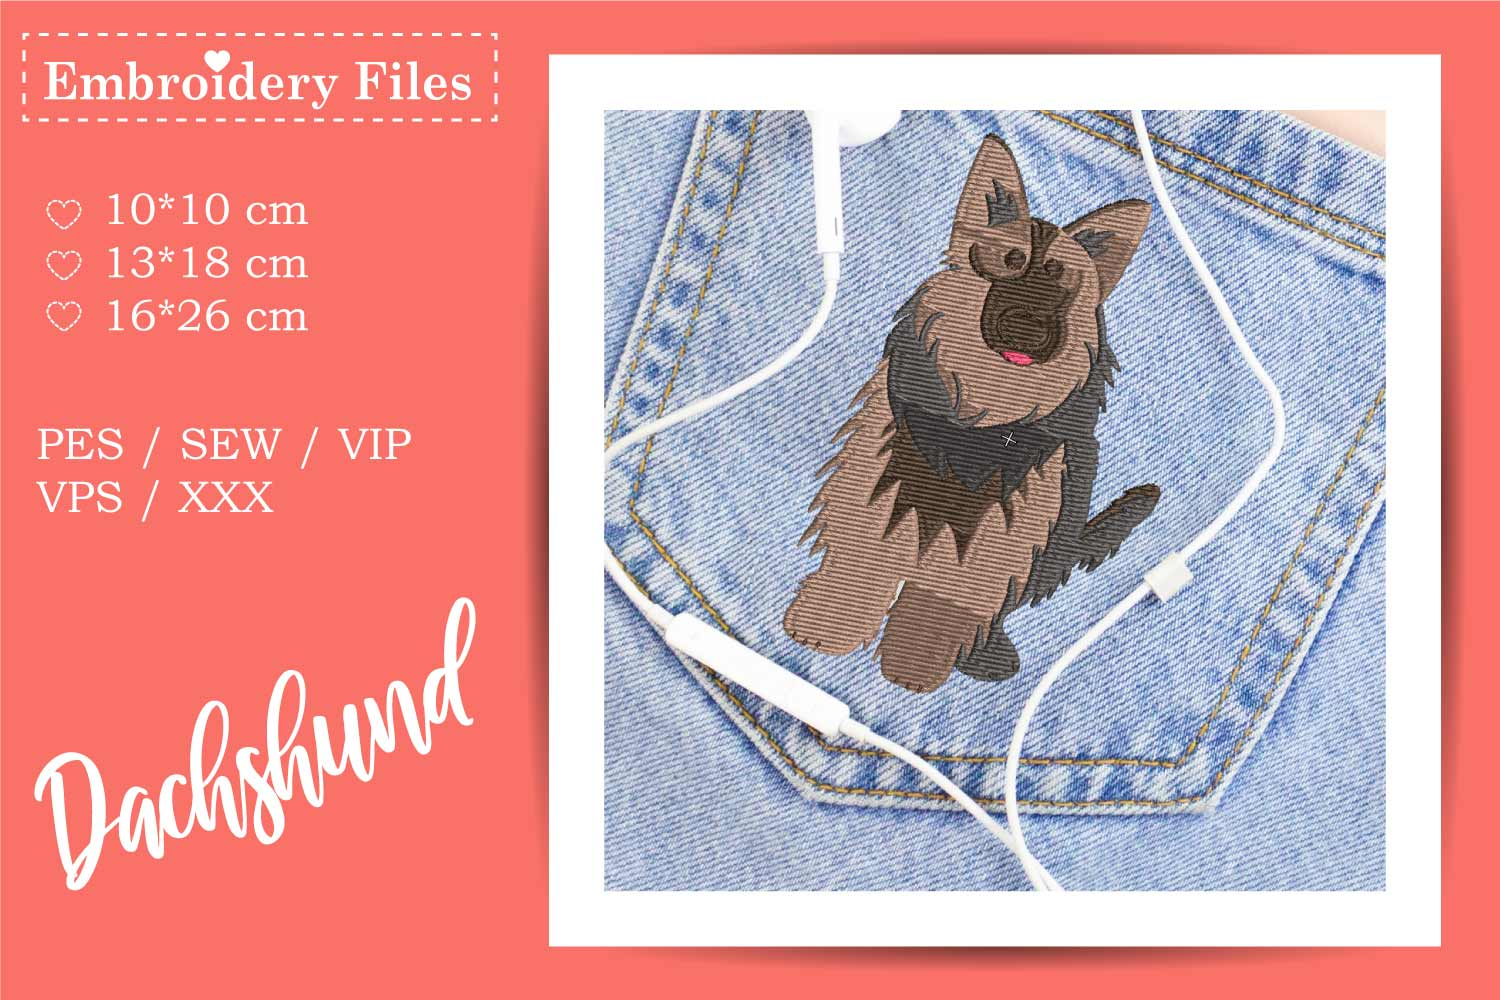 Cute Shepherd Dog - Embroidery File for Beginners example image 2